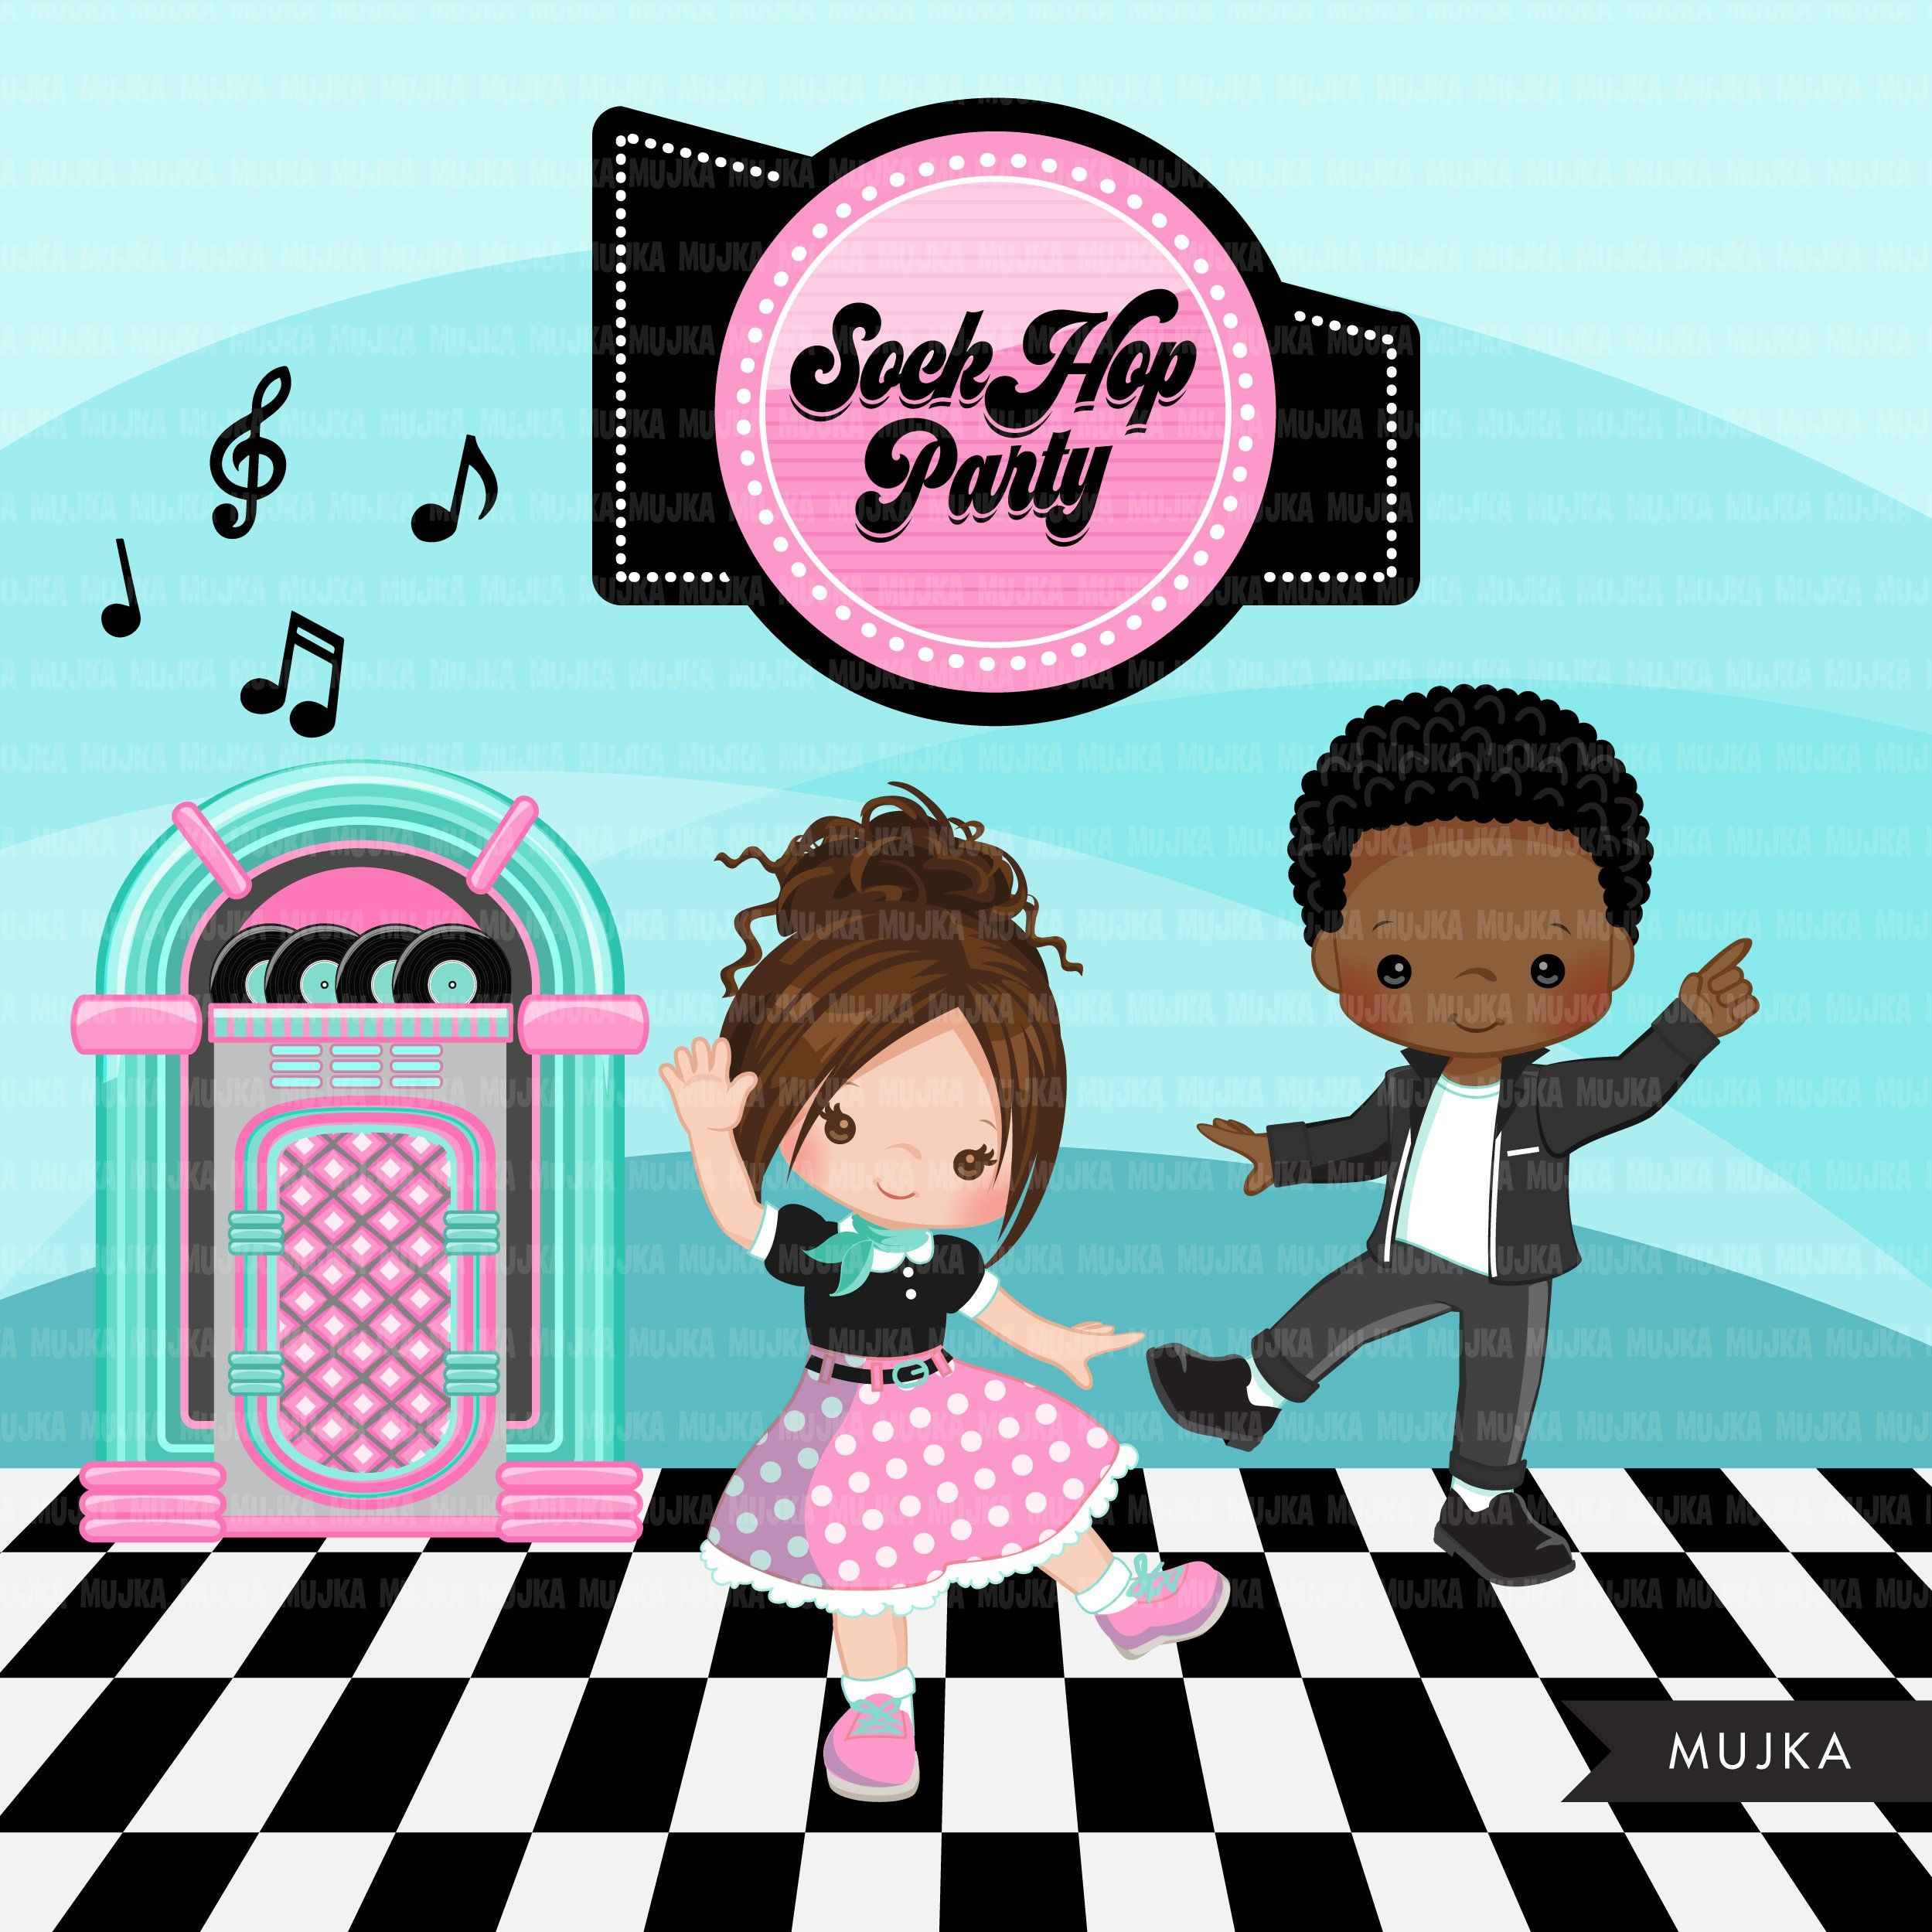 hight resolution of sock hop party clipart 50 s retro diner jukebox etsy